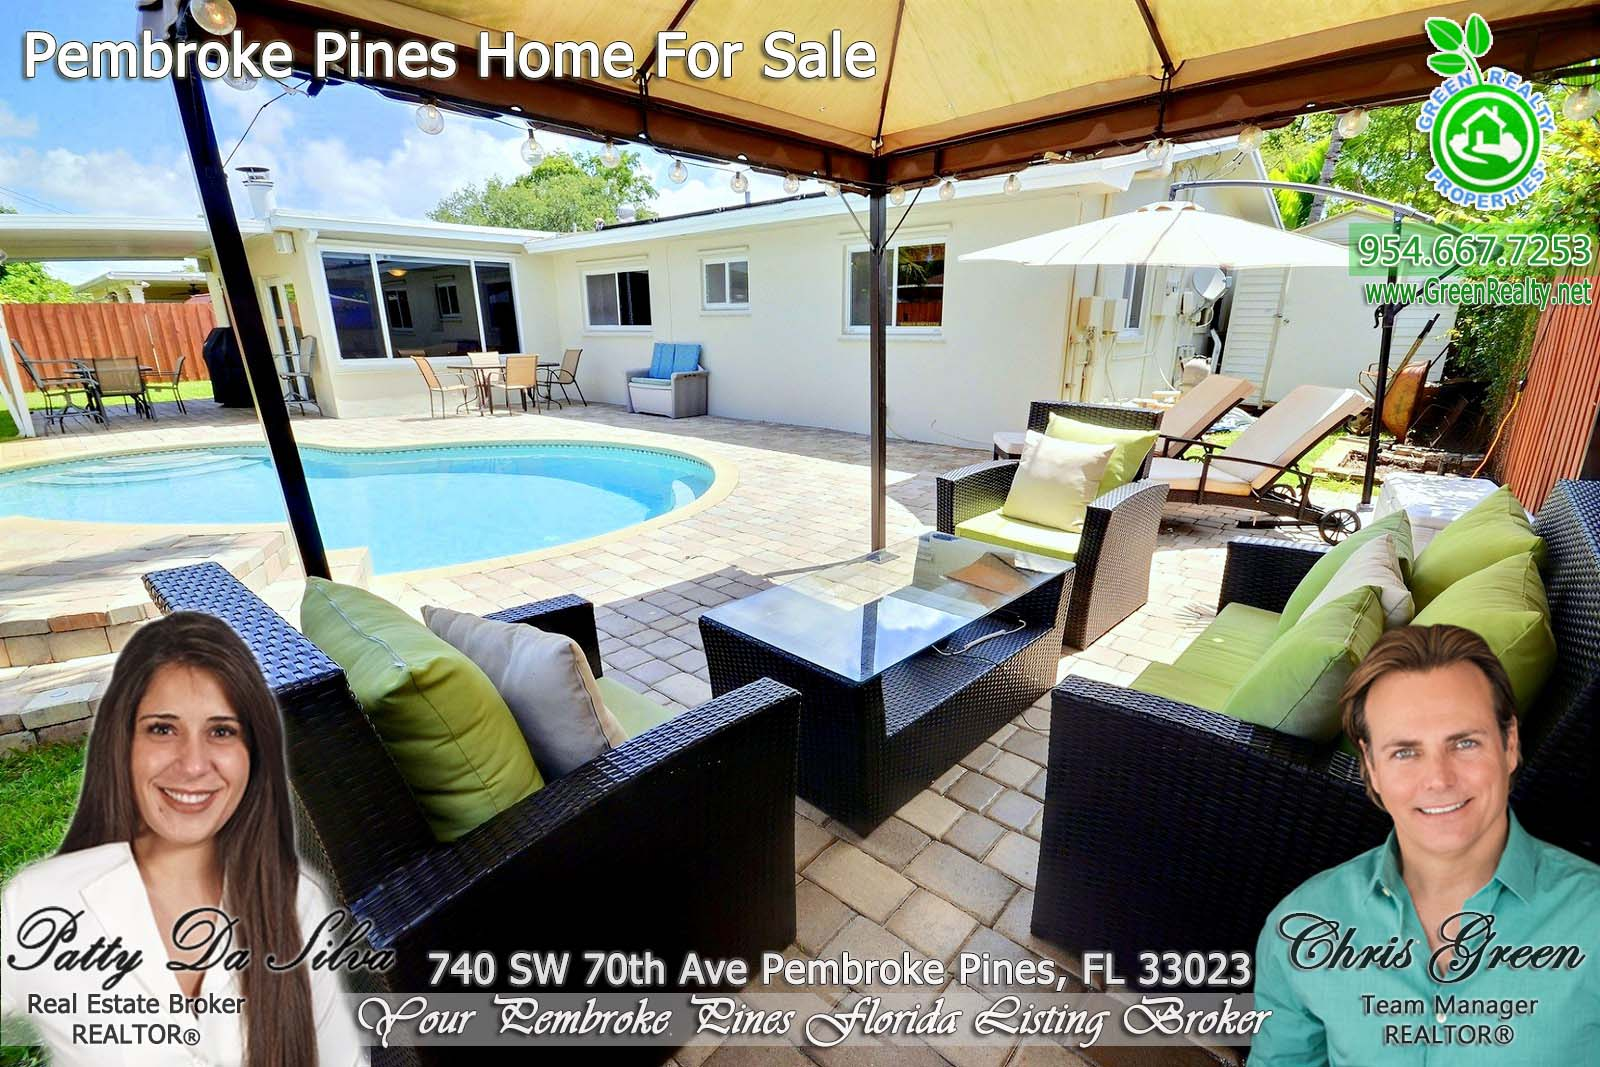 28 Homes For Sale in Pembroke Pines (5)